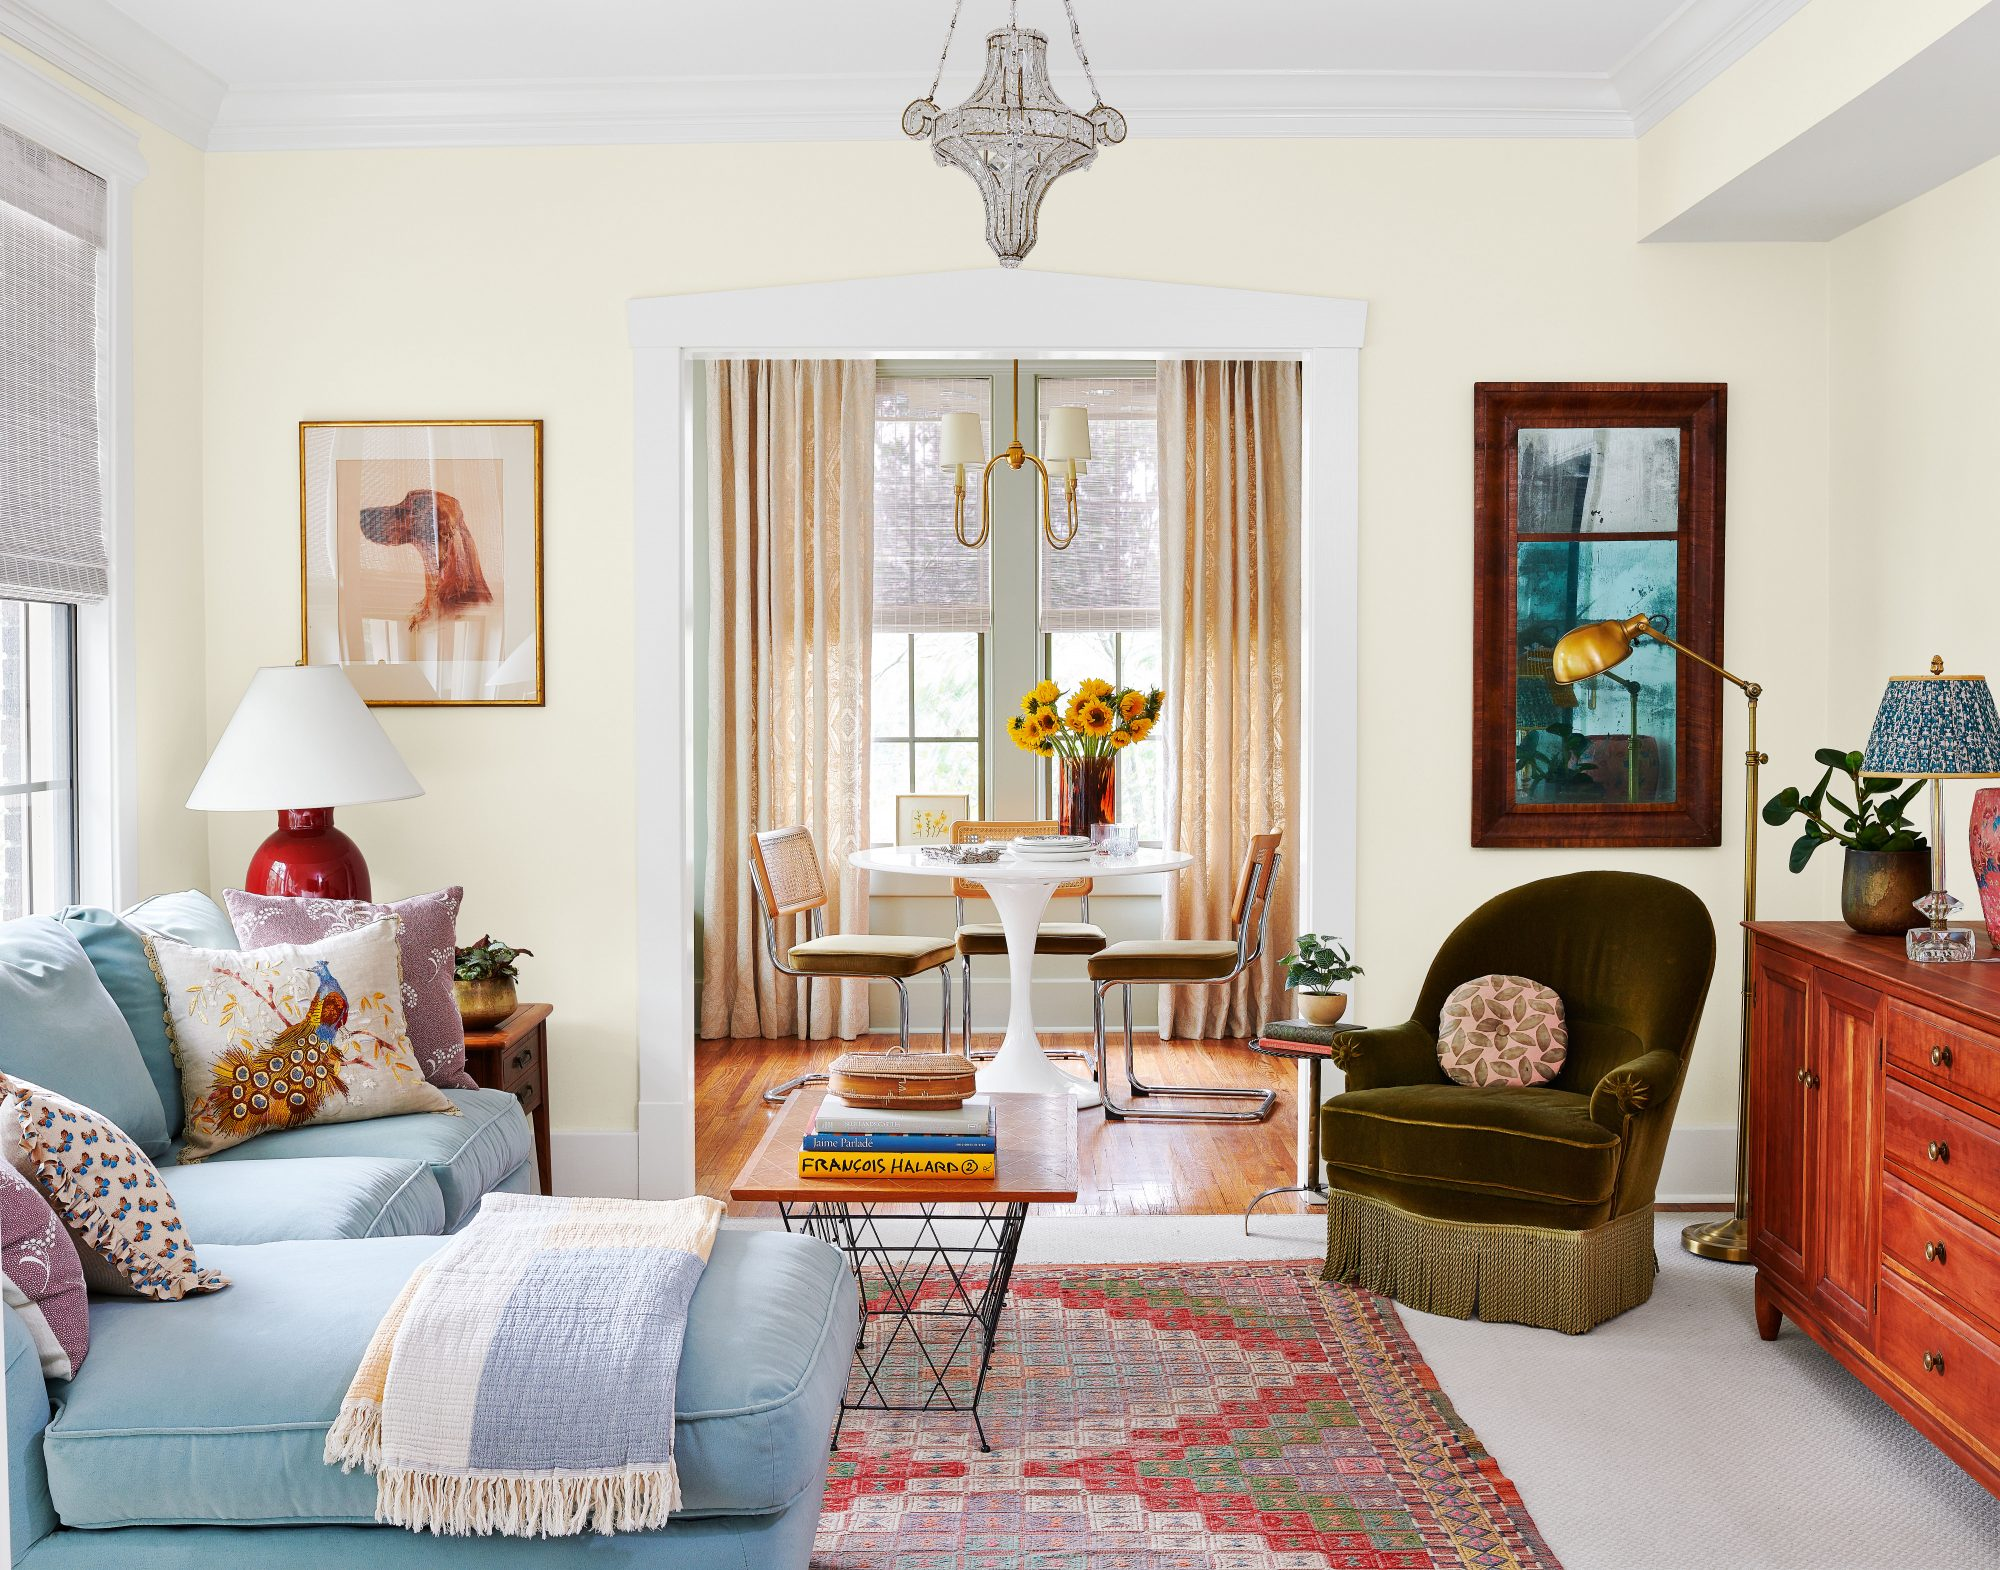 Jessica Stambaugh designed apartment living room with vintage accents